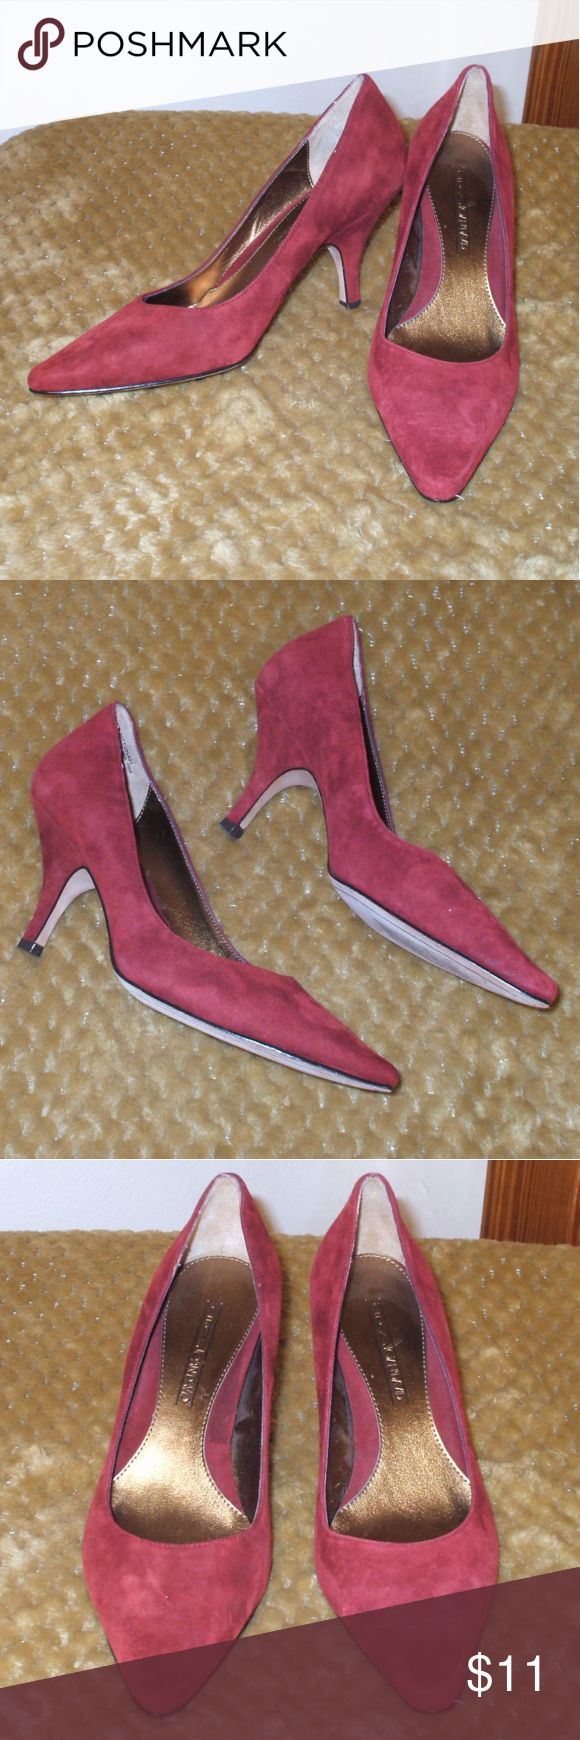 """Wine Red Suede Pump Heels Circa Joan & David Suede Pumps Wine red Size 6M 2.75"""" heel Genuine leather upper & sole Stunning used condition smoking home Joan & David Shoes Heels"""